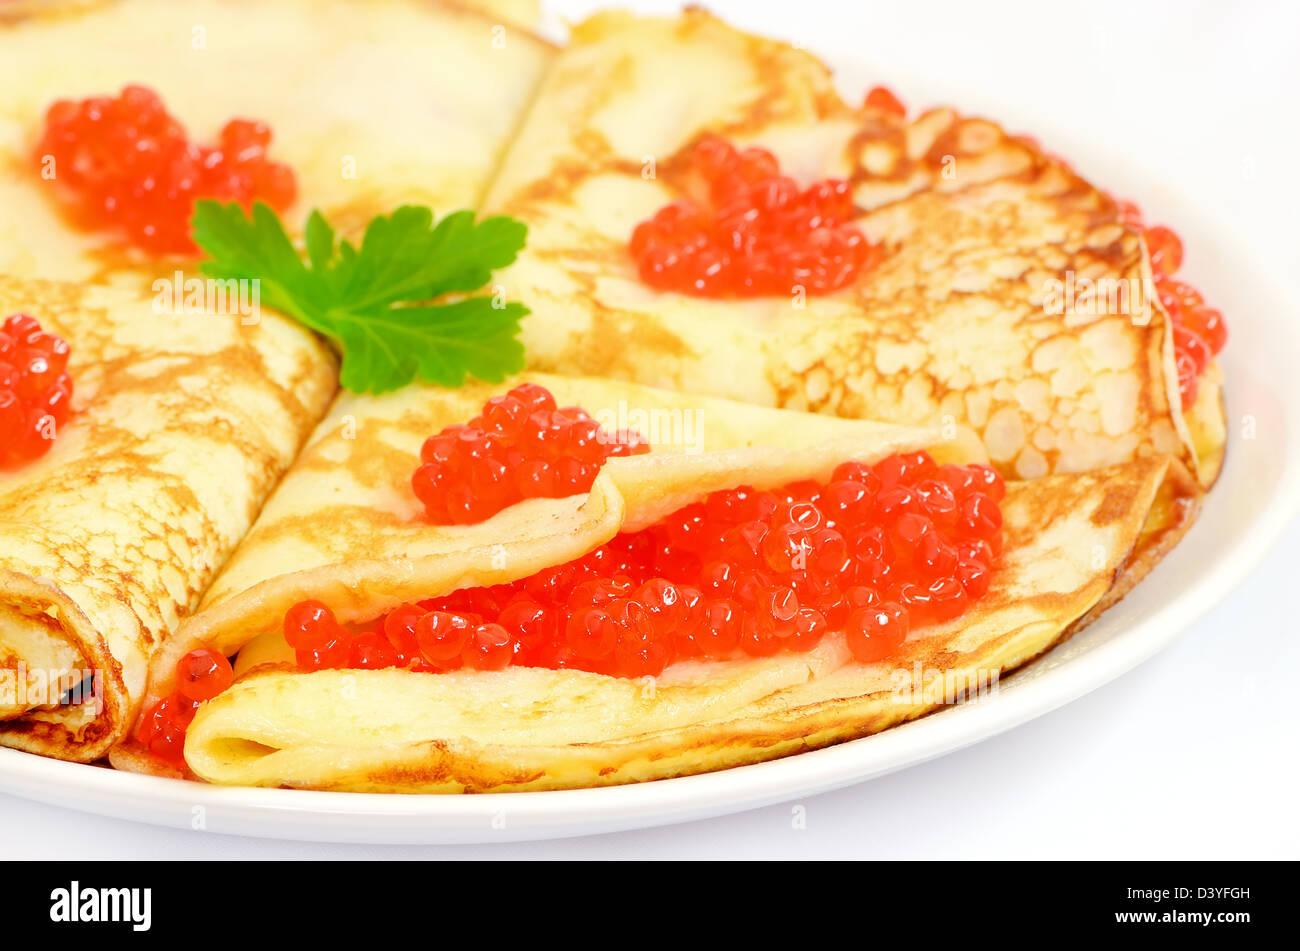 Pancakes with red caviar on a plate on white background - Stock Image